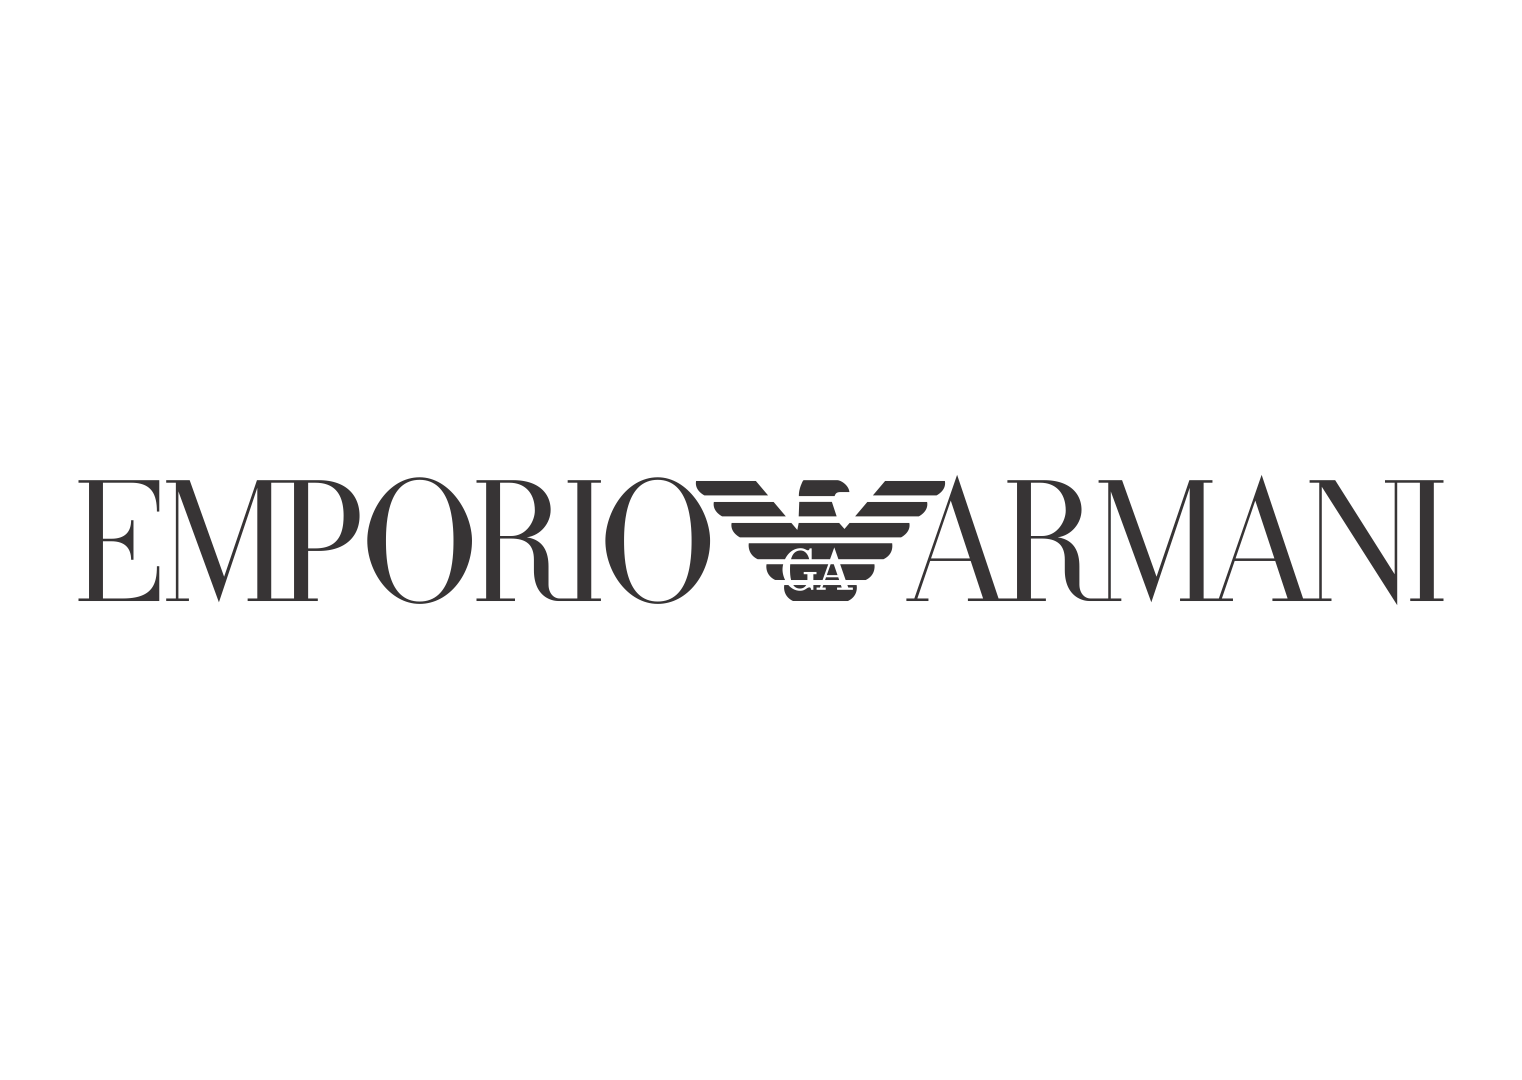 emporio armani logo vector logo brands for free hd 3d